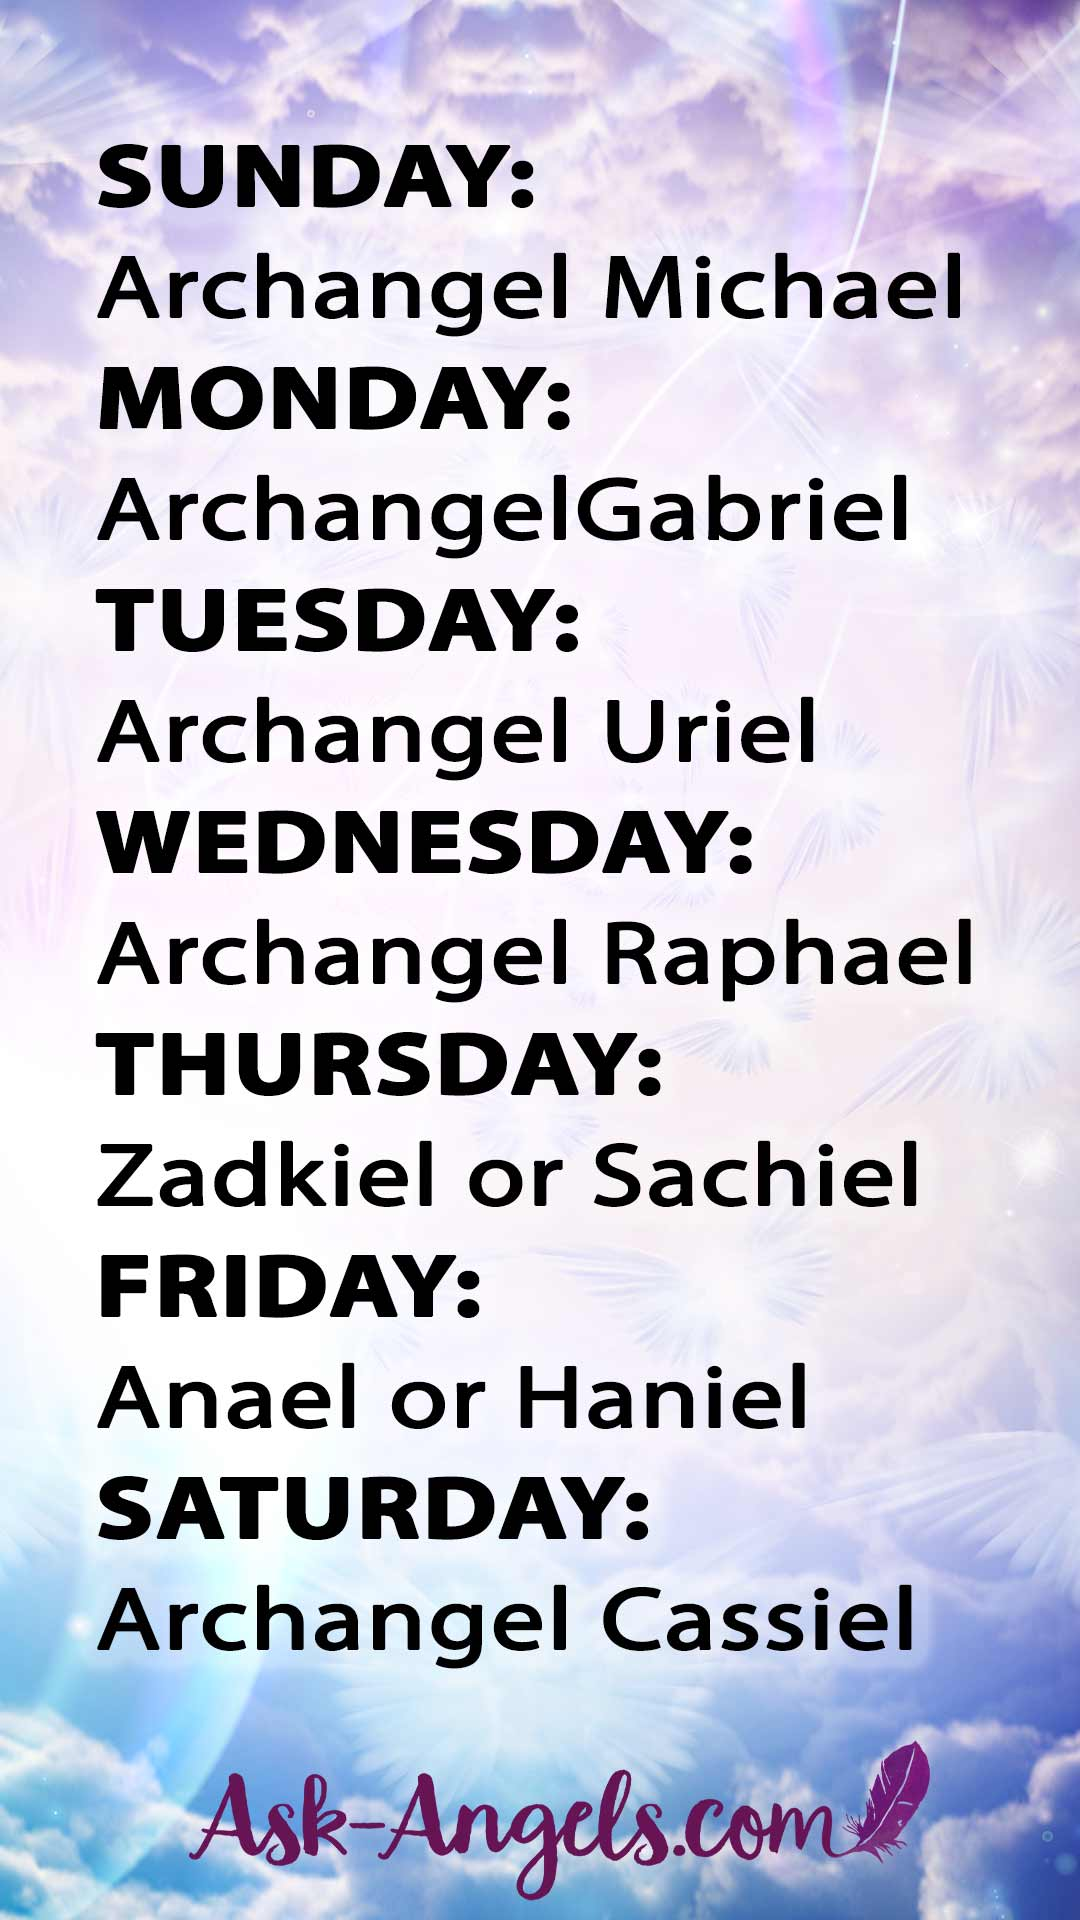 Seven Archangels of the Week!